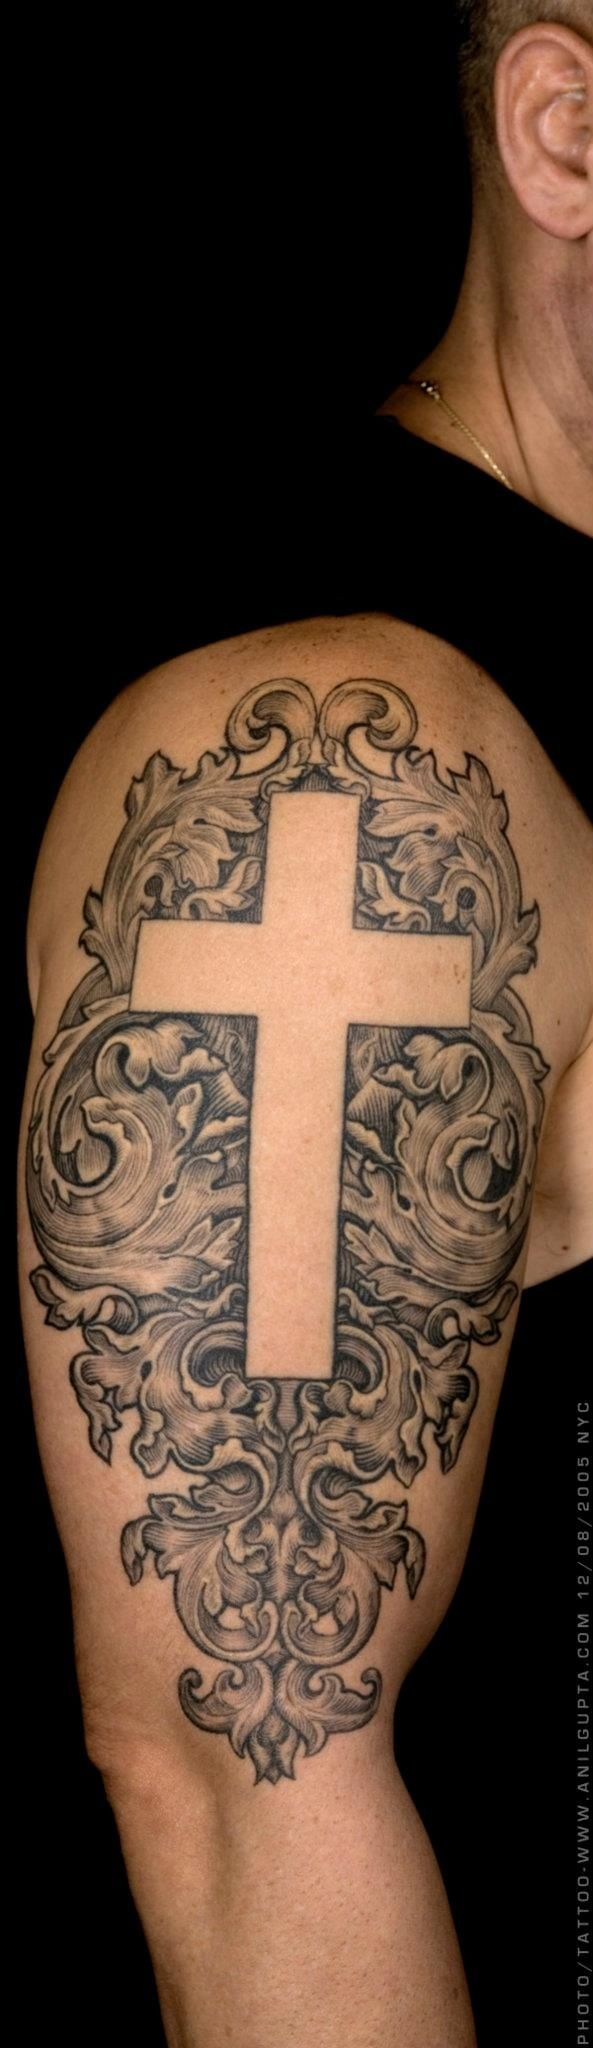 Cross tattoos for men and their meanings sleeve tattoo for Cross tattoo under left eye meaning